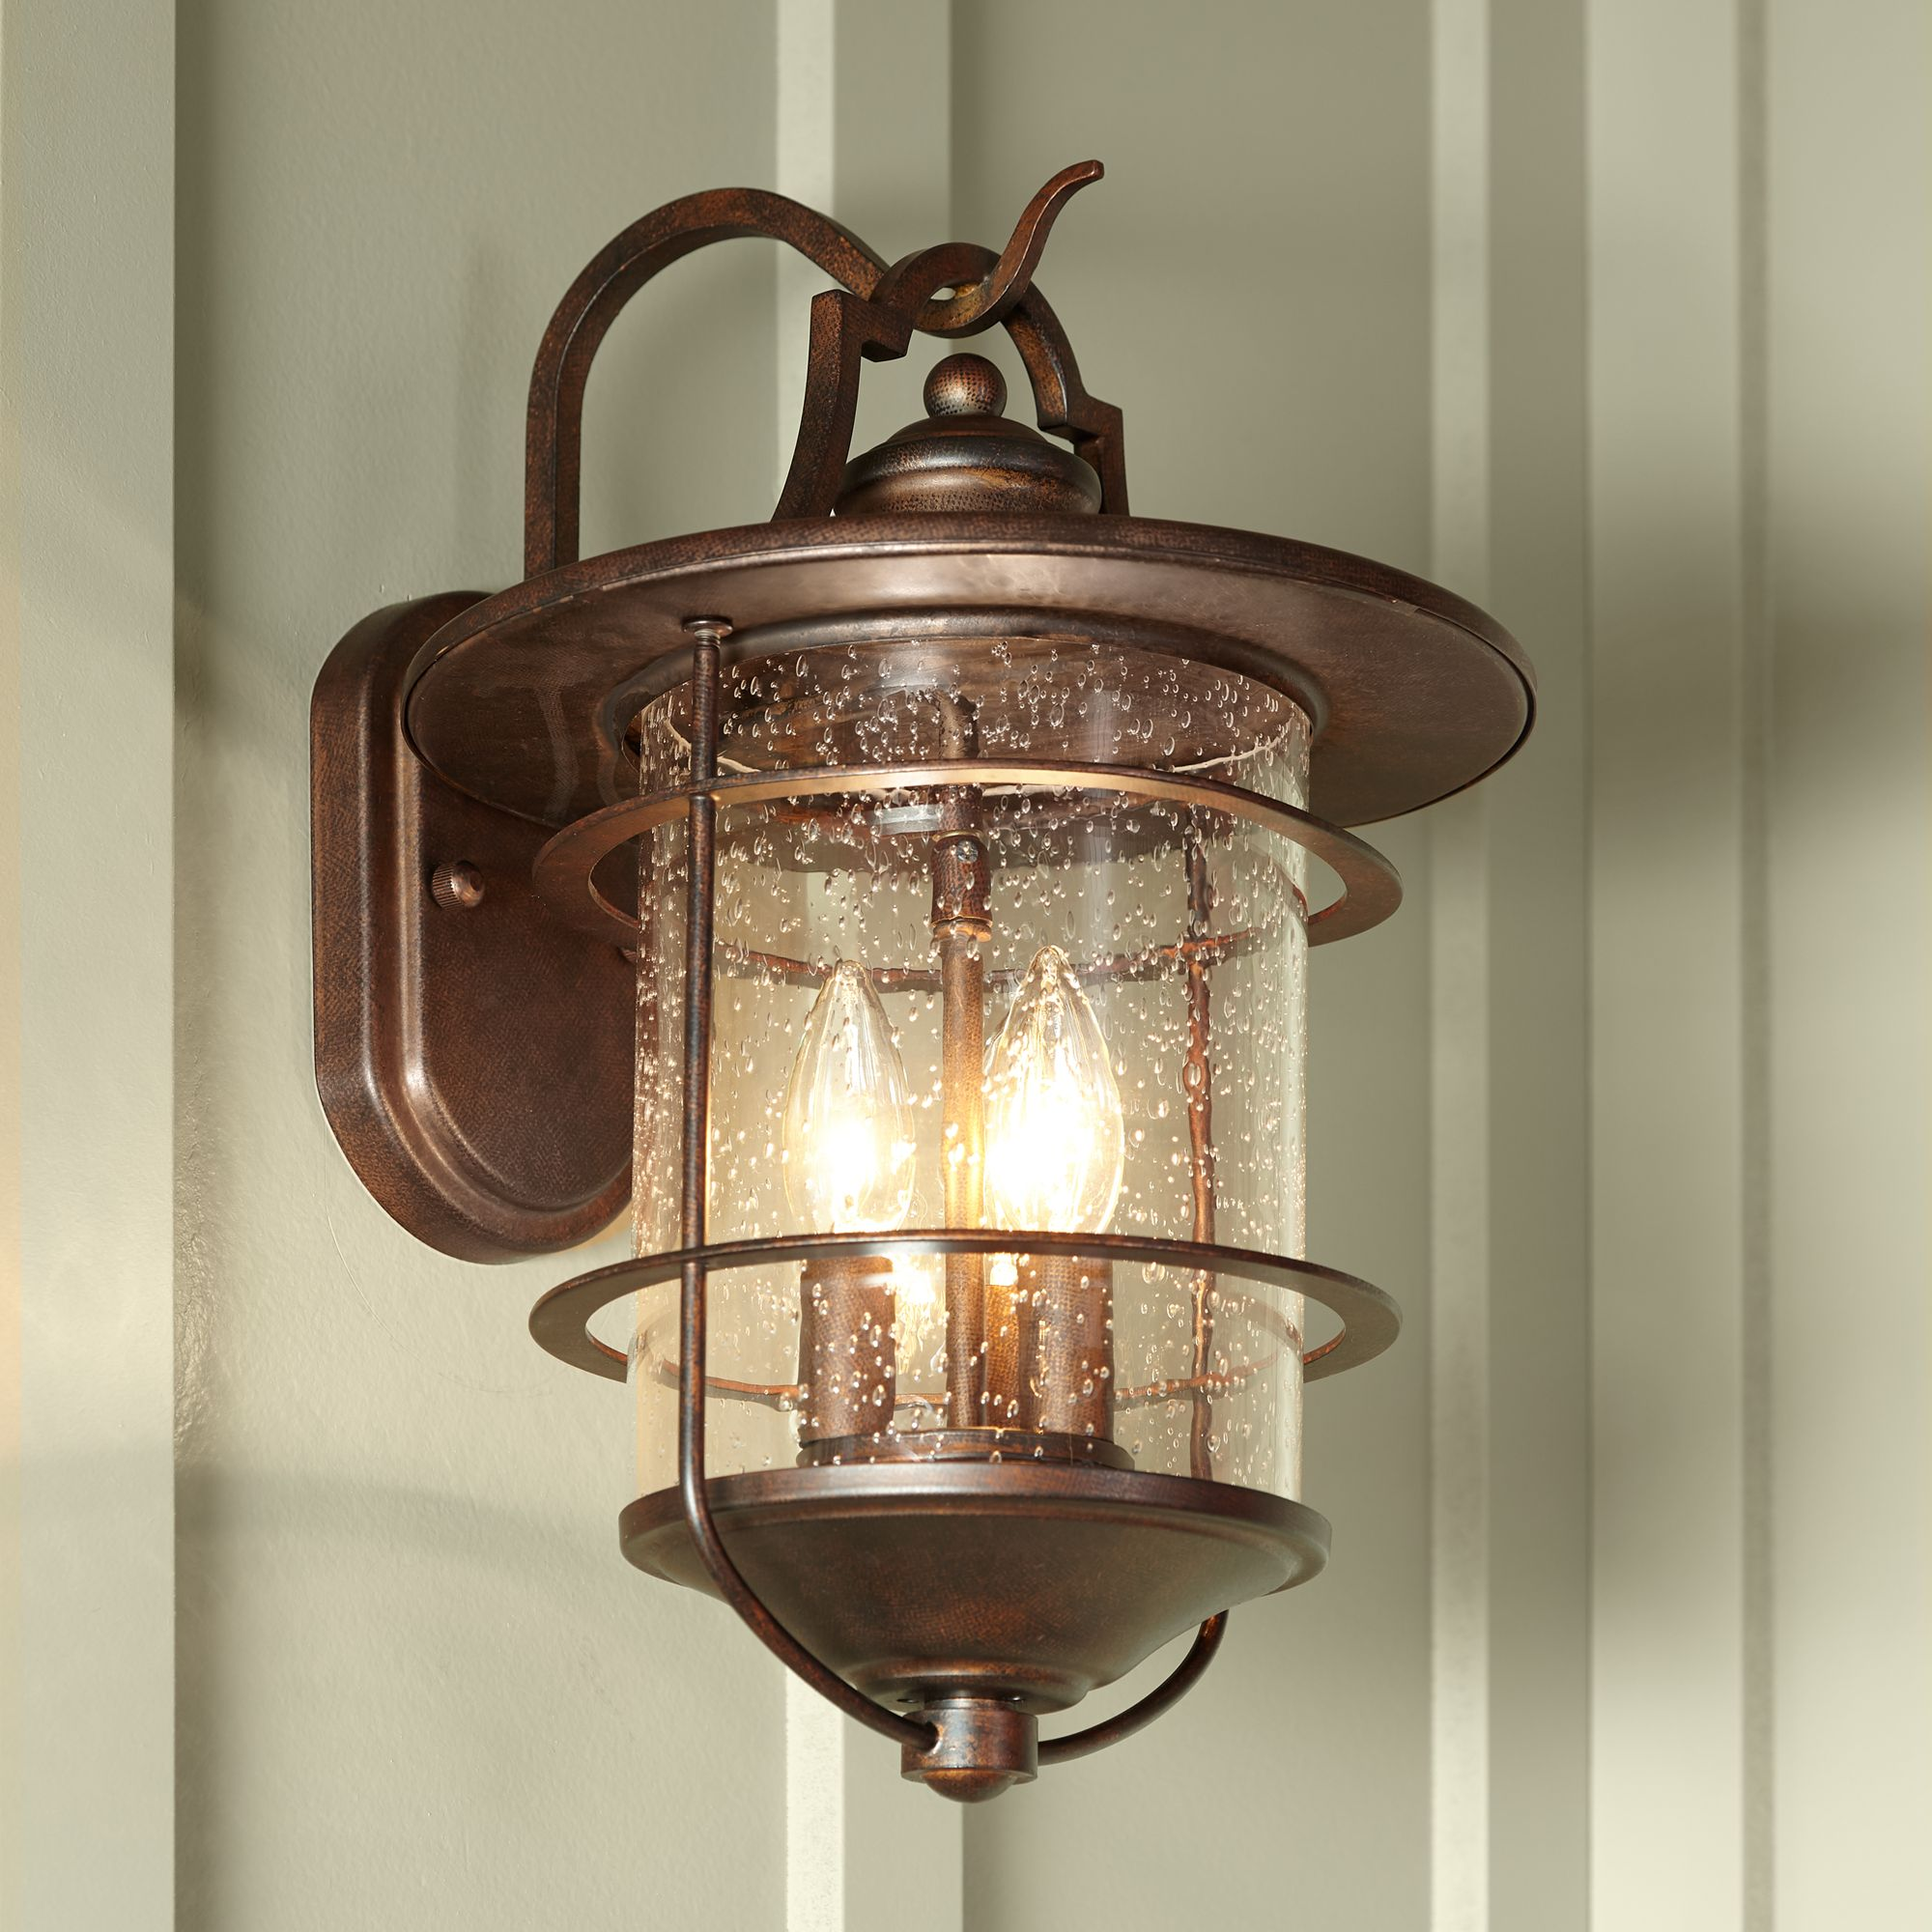 Rustic Outdoor Wall Light Fixture Led Bronze 11 1 2 Seedy Glass Exterior House